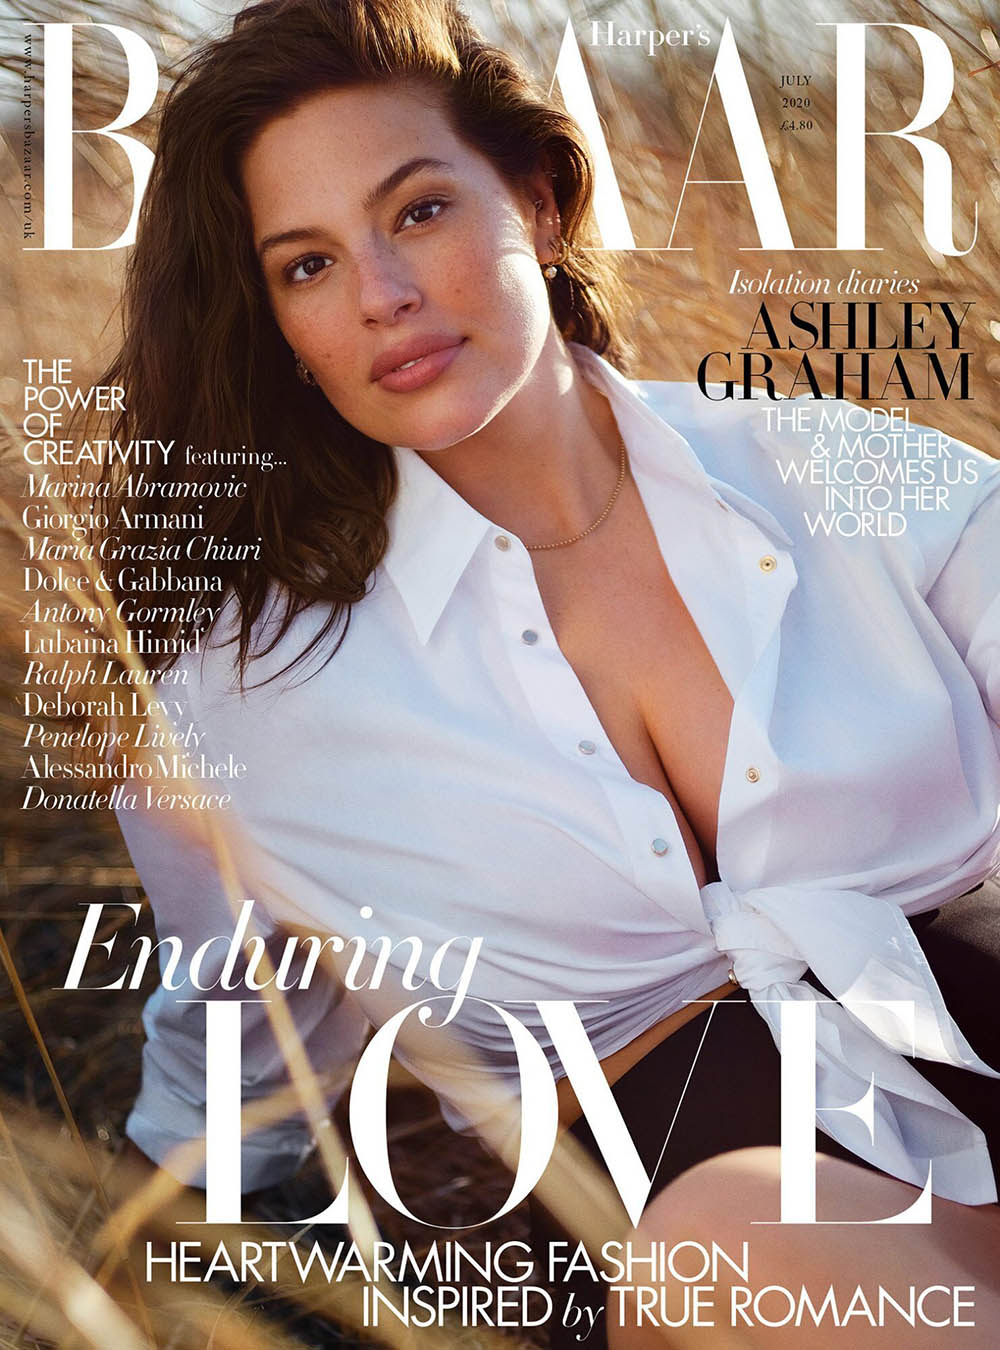 Ashley Graham covers Harper's Bazaar UK July 2020 by Justin ErvinAshley Graham covers Harper's Bazaar UK July 2020 by Justin Ervin